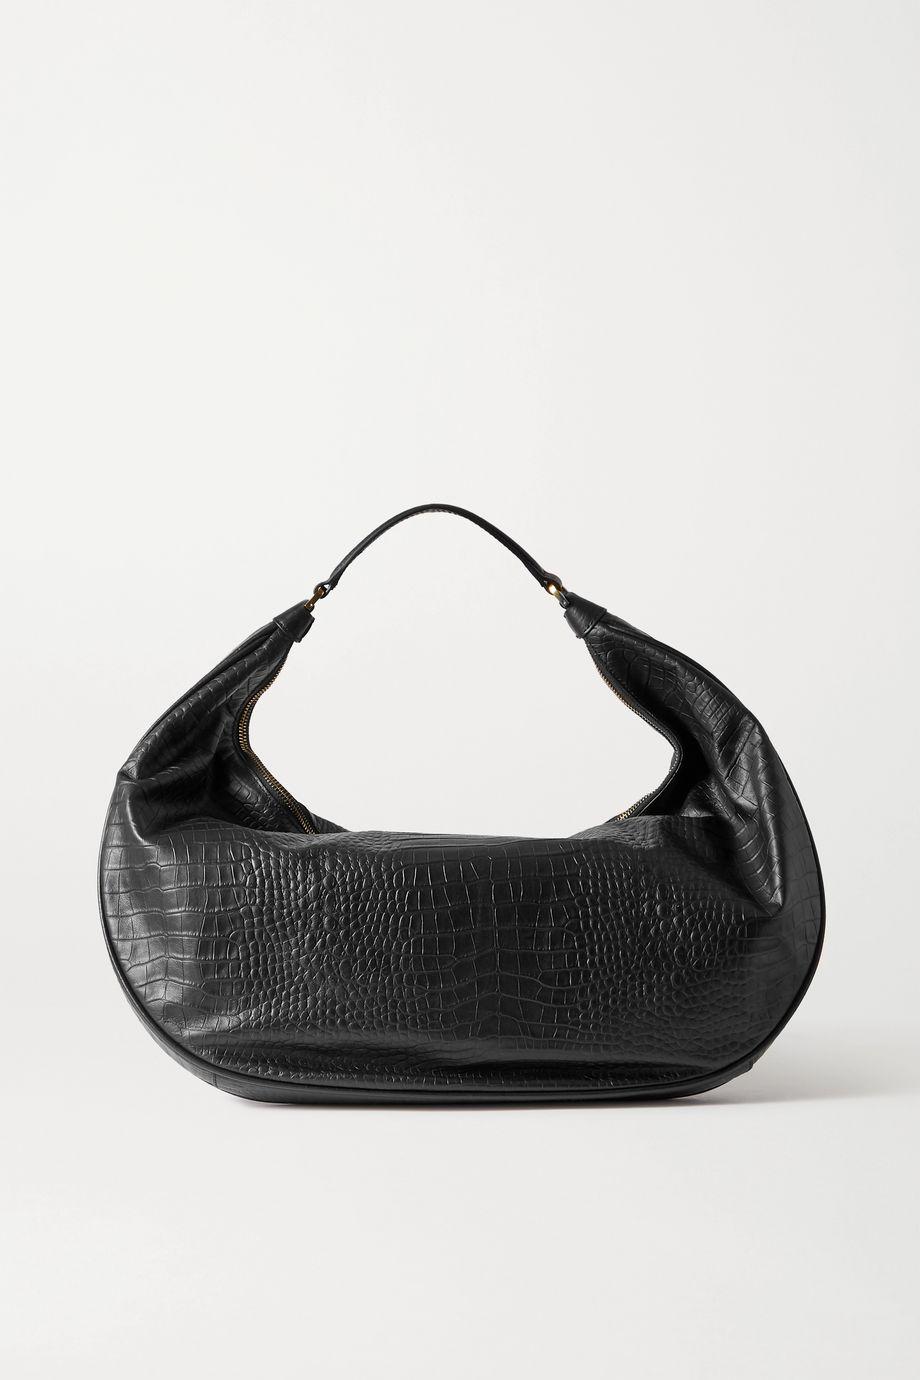 STAUD Sasha croc-effect leather shoulder bag